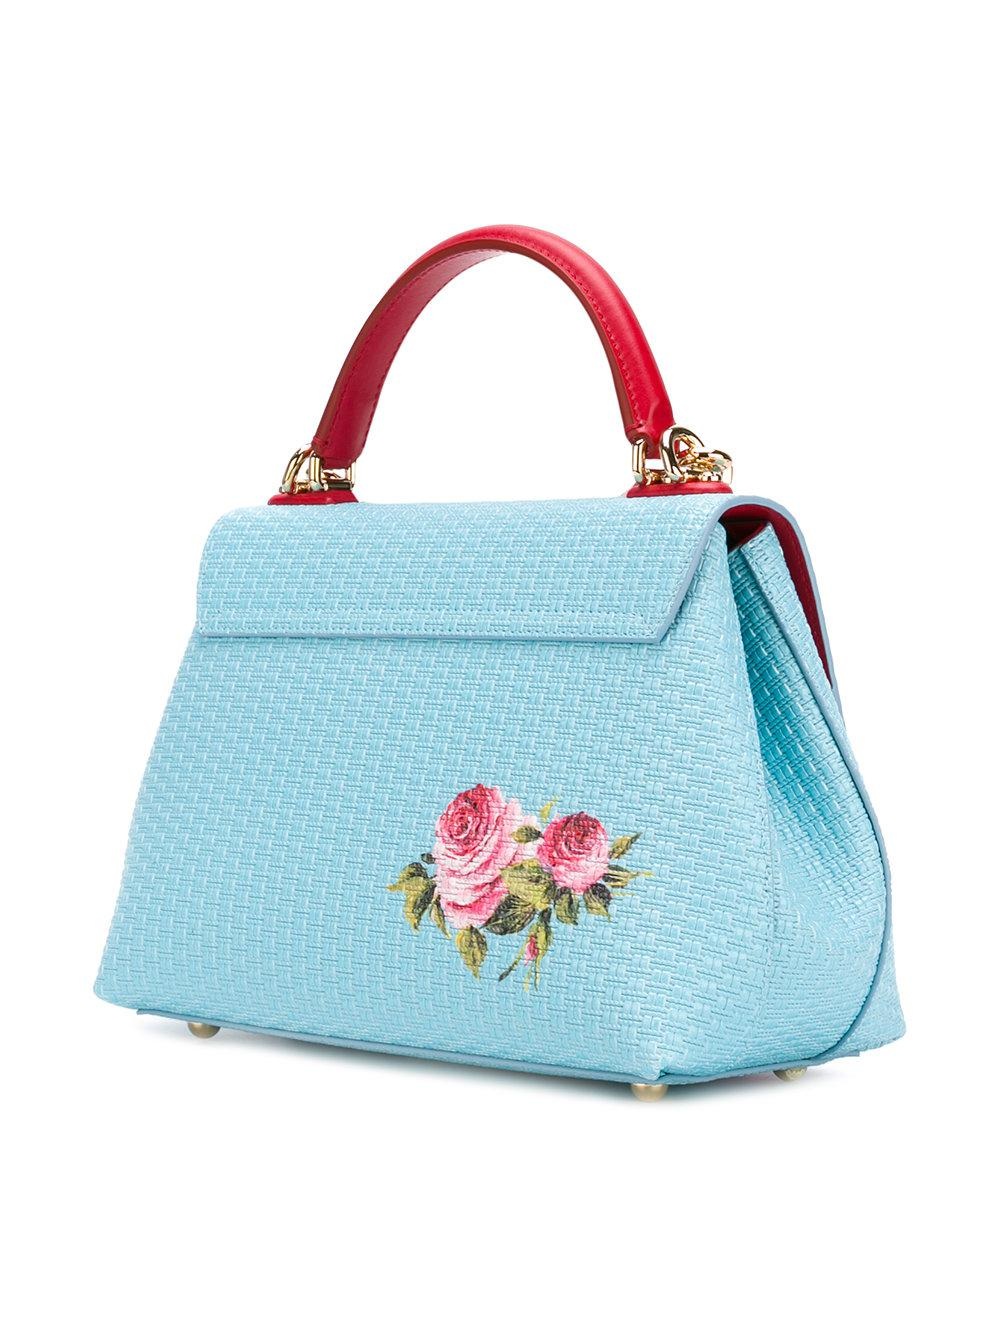 Dolce & Gabbana Leather Lucia Tote in Blue